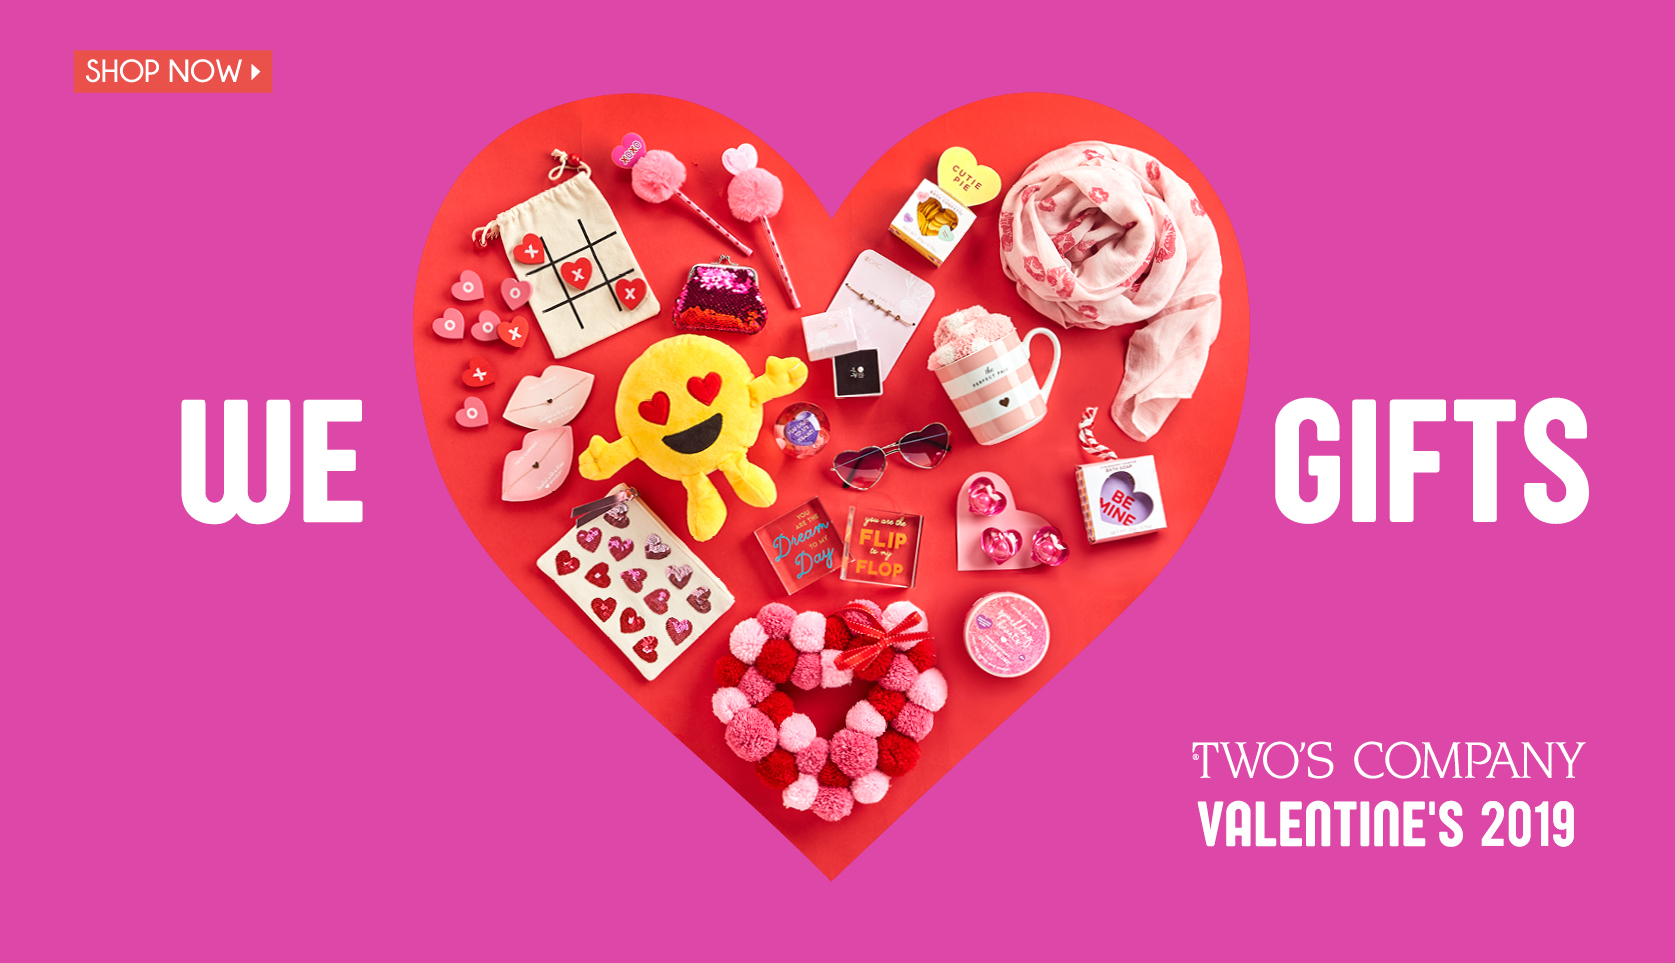 Valentine's 2019 products image